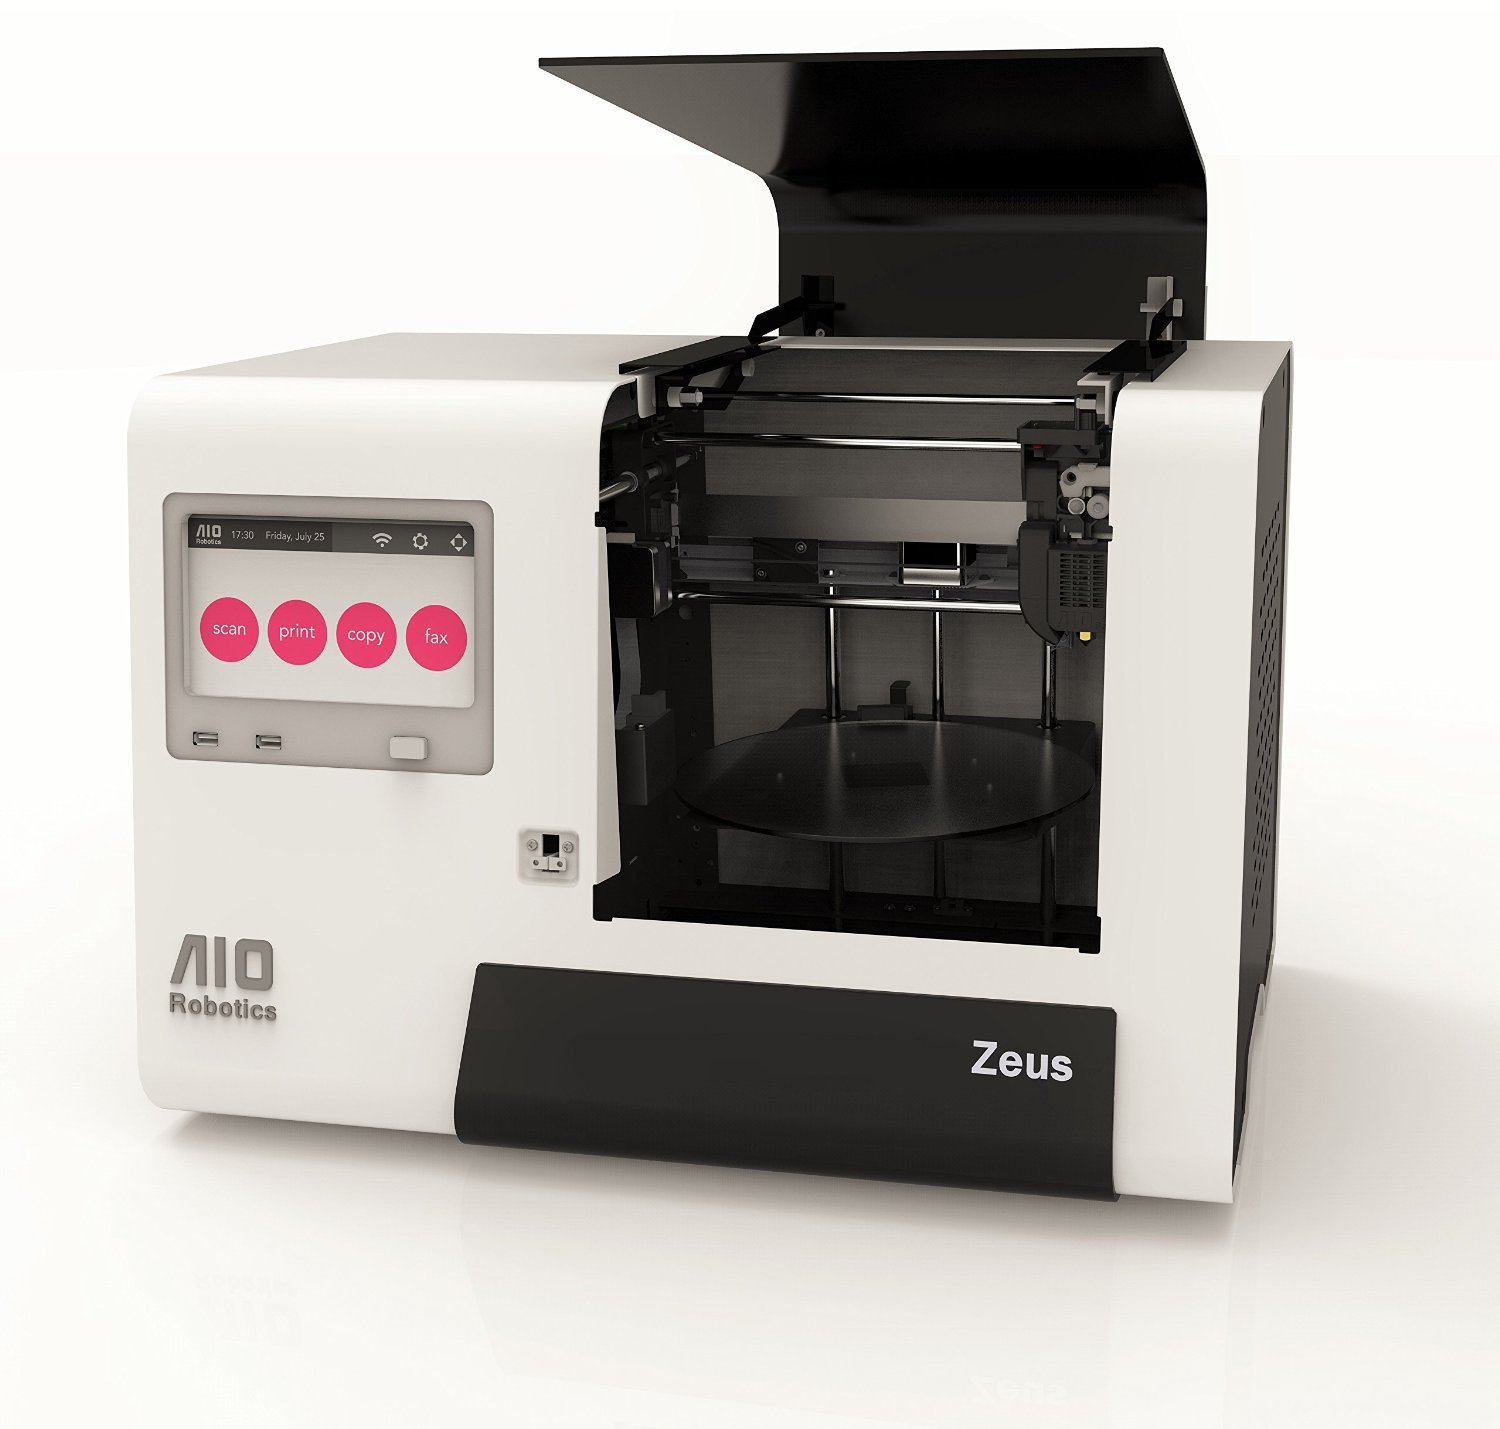 Reviews of AIO Robotics Zeus All-In-One 3D Printer